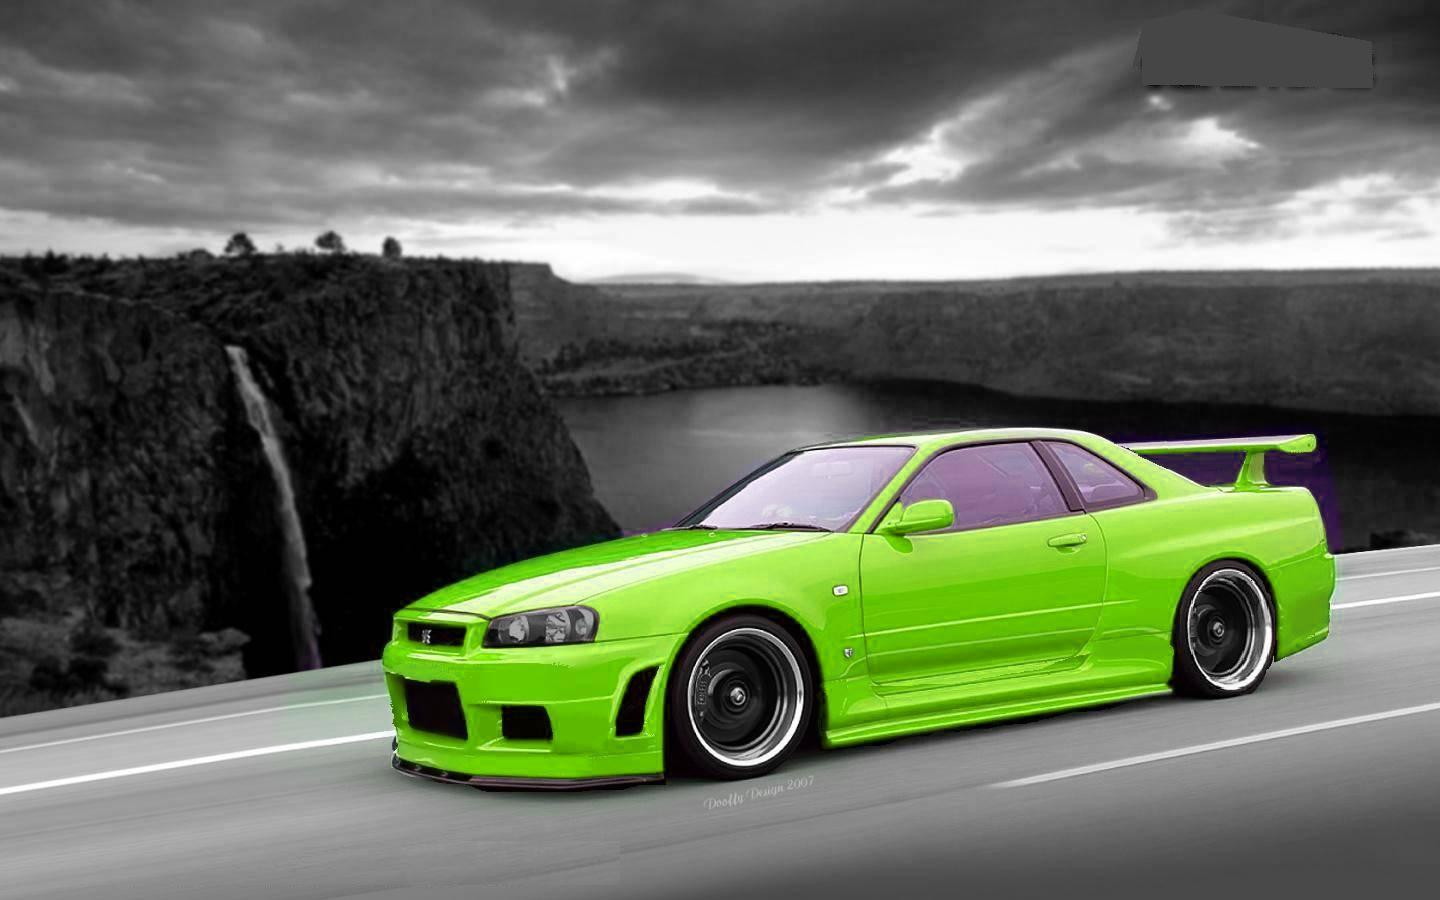 Free Download Nissan Skyline R34 Wallpapers 1440x900 For Your